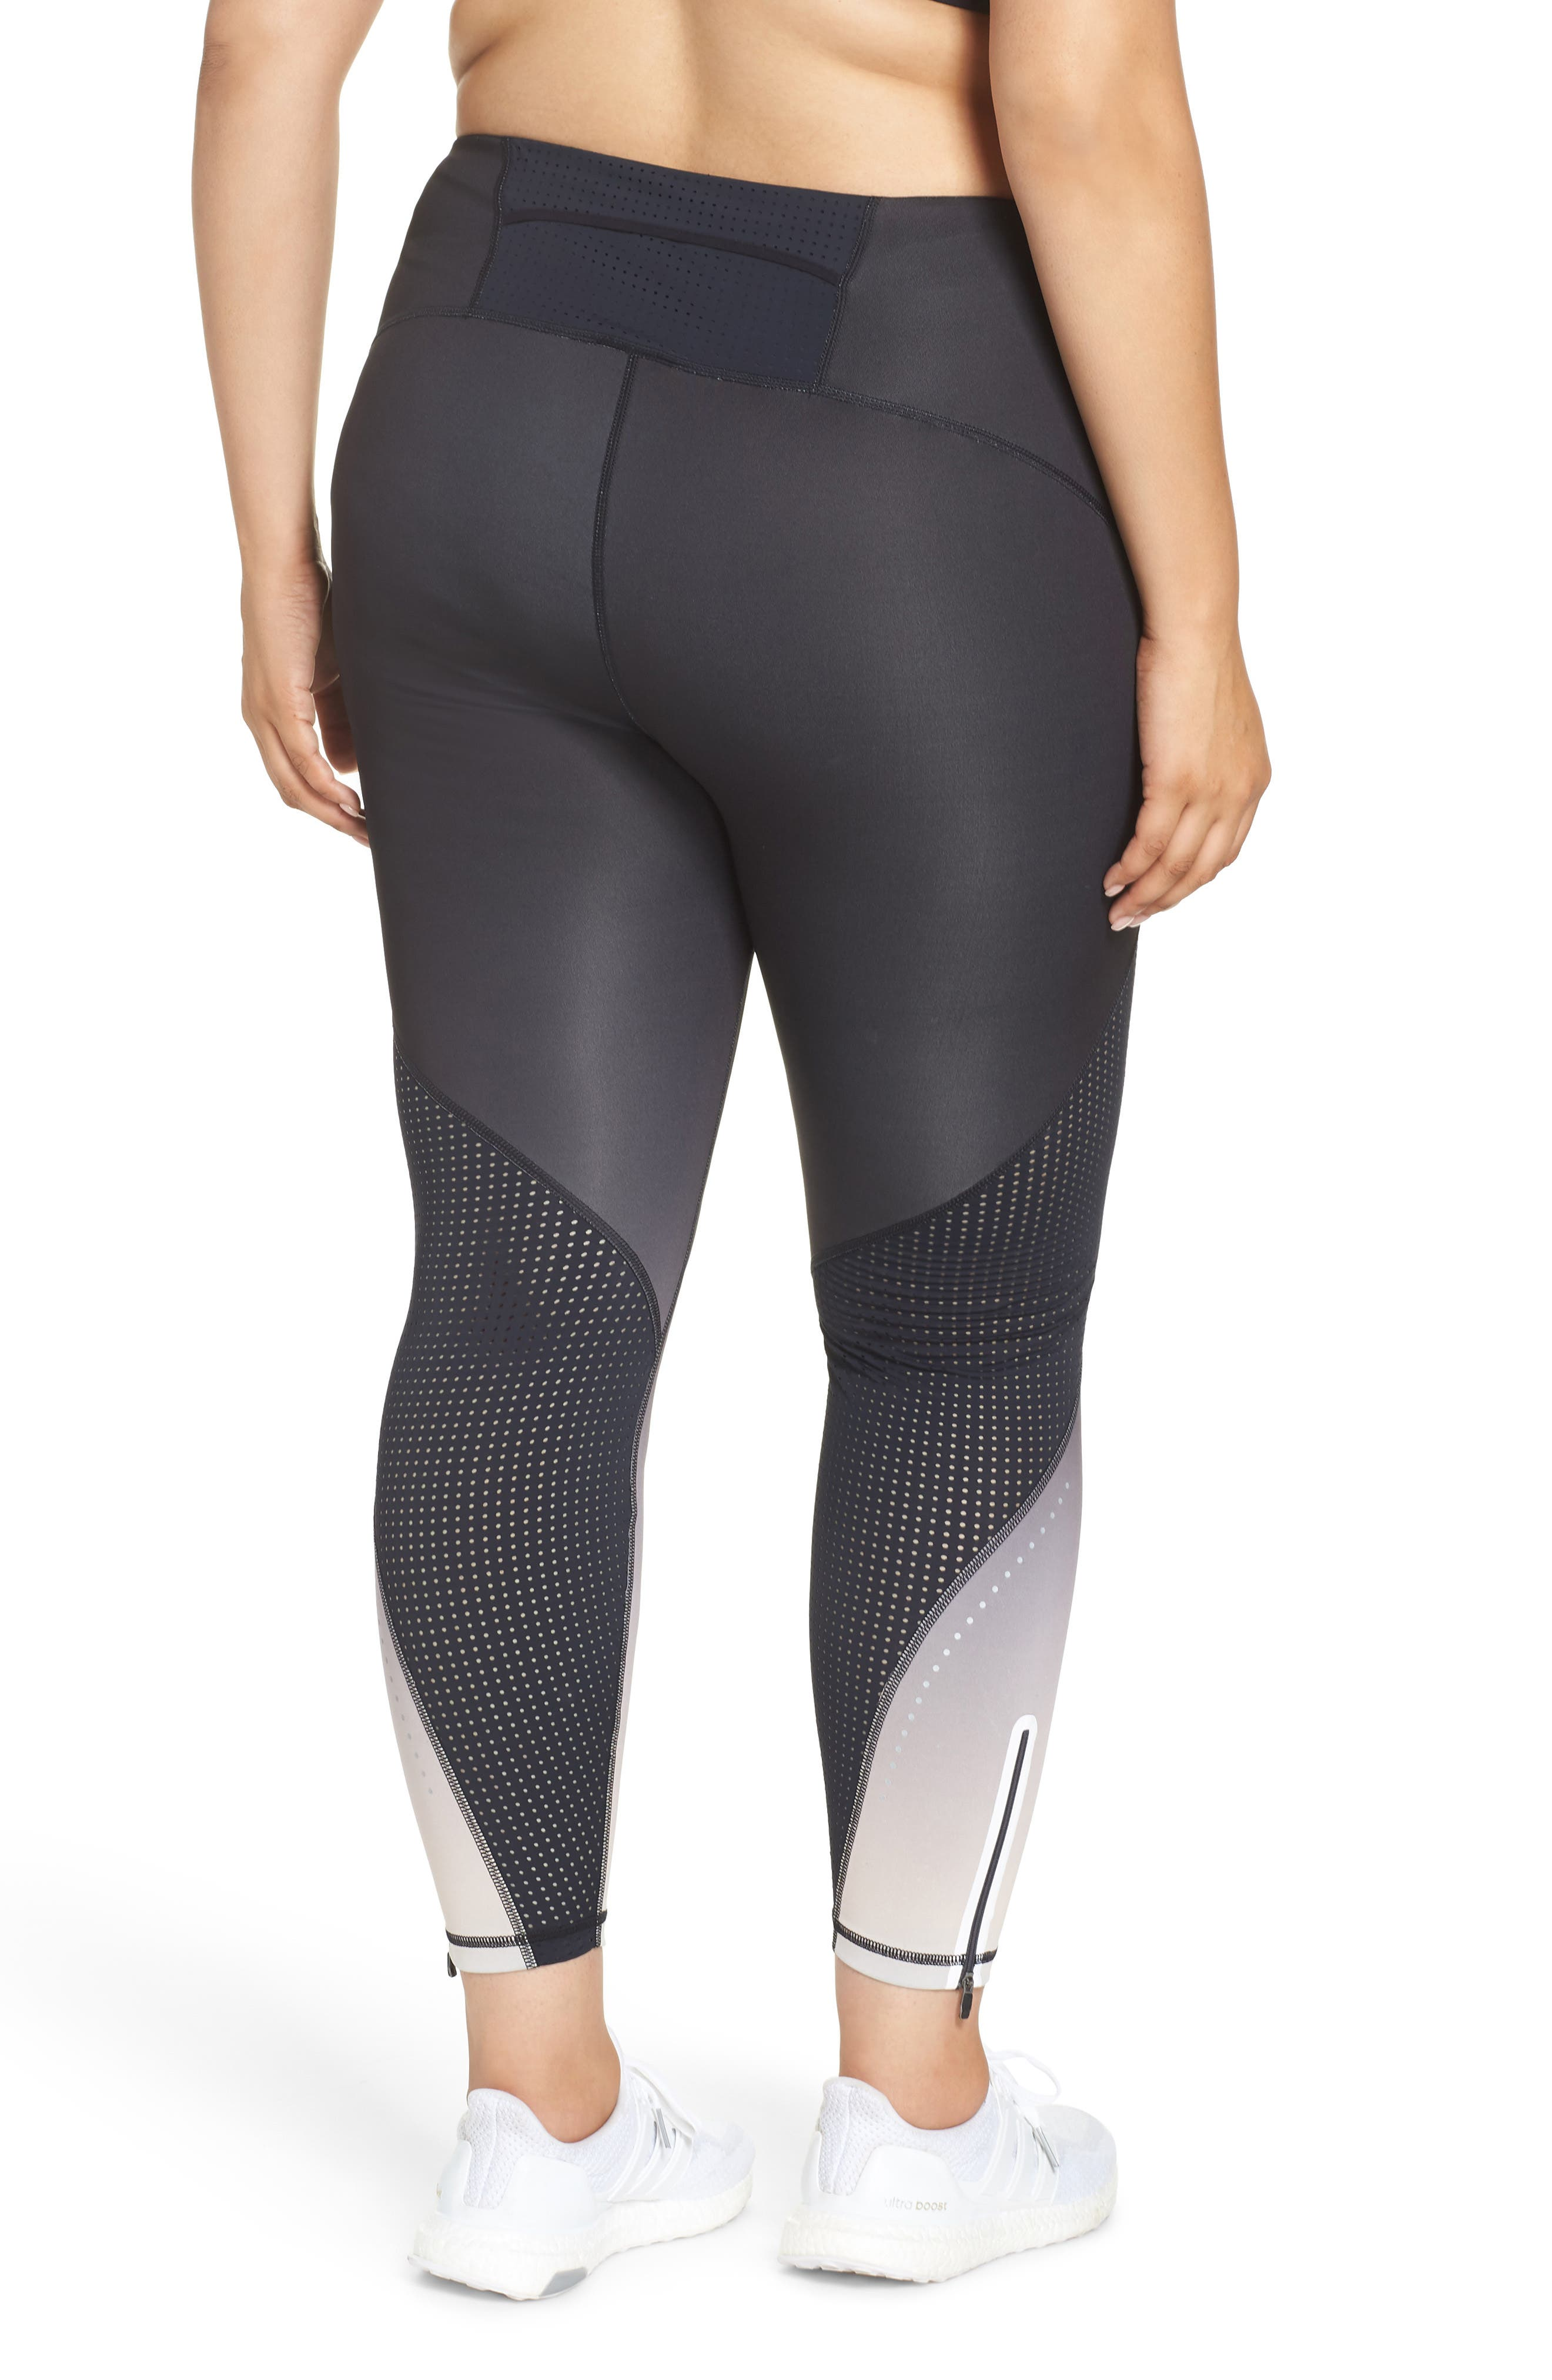 Protech V.3 Leggings,                             Alternate thumbnail 2, color,                             OMBRE TAUPE